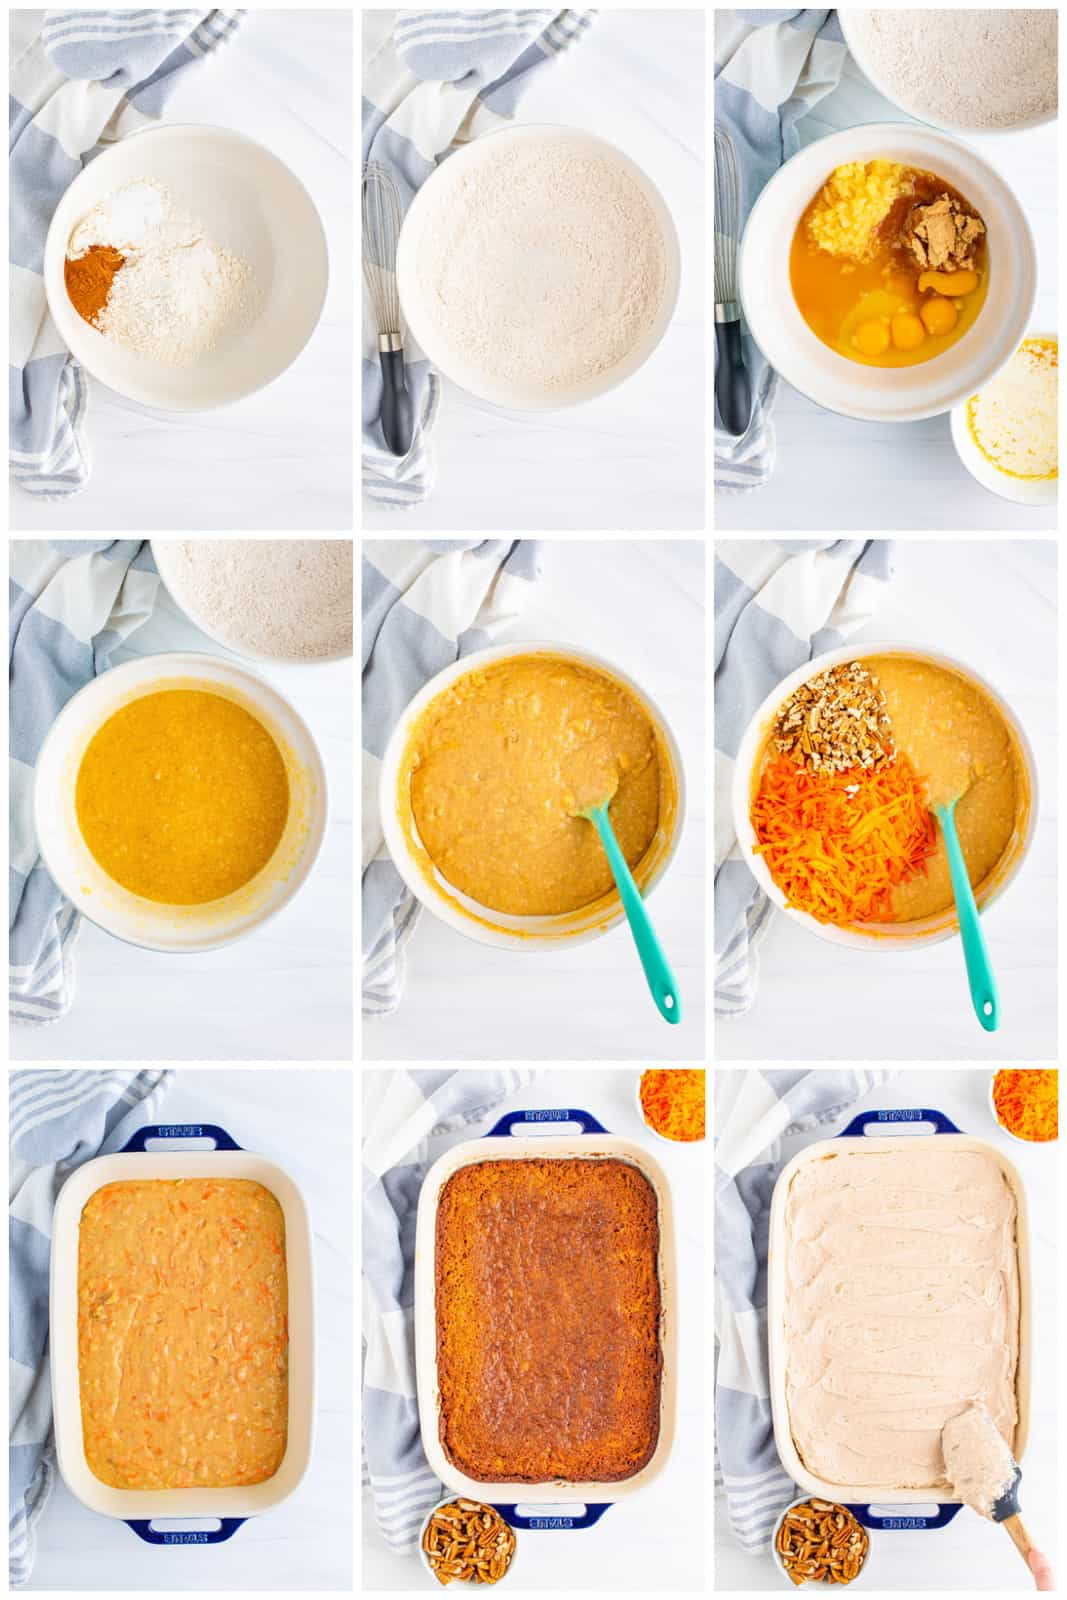 Step by step photos on how to make The Best Carrot Cake